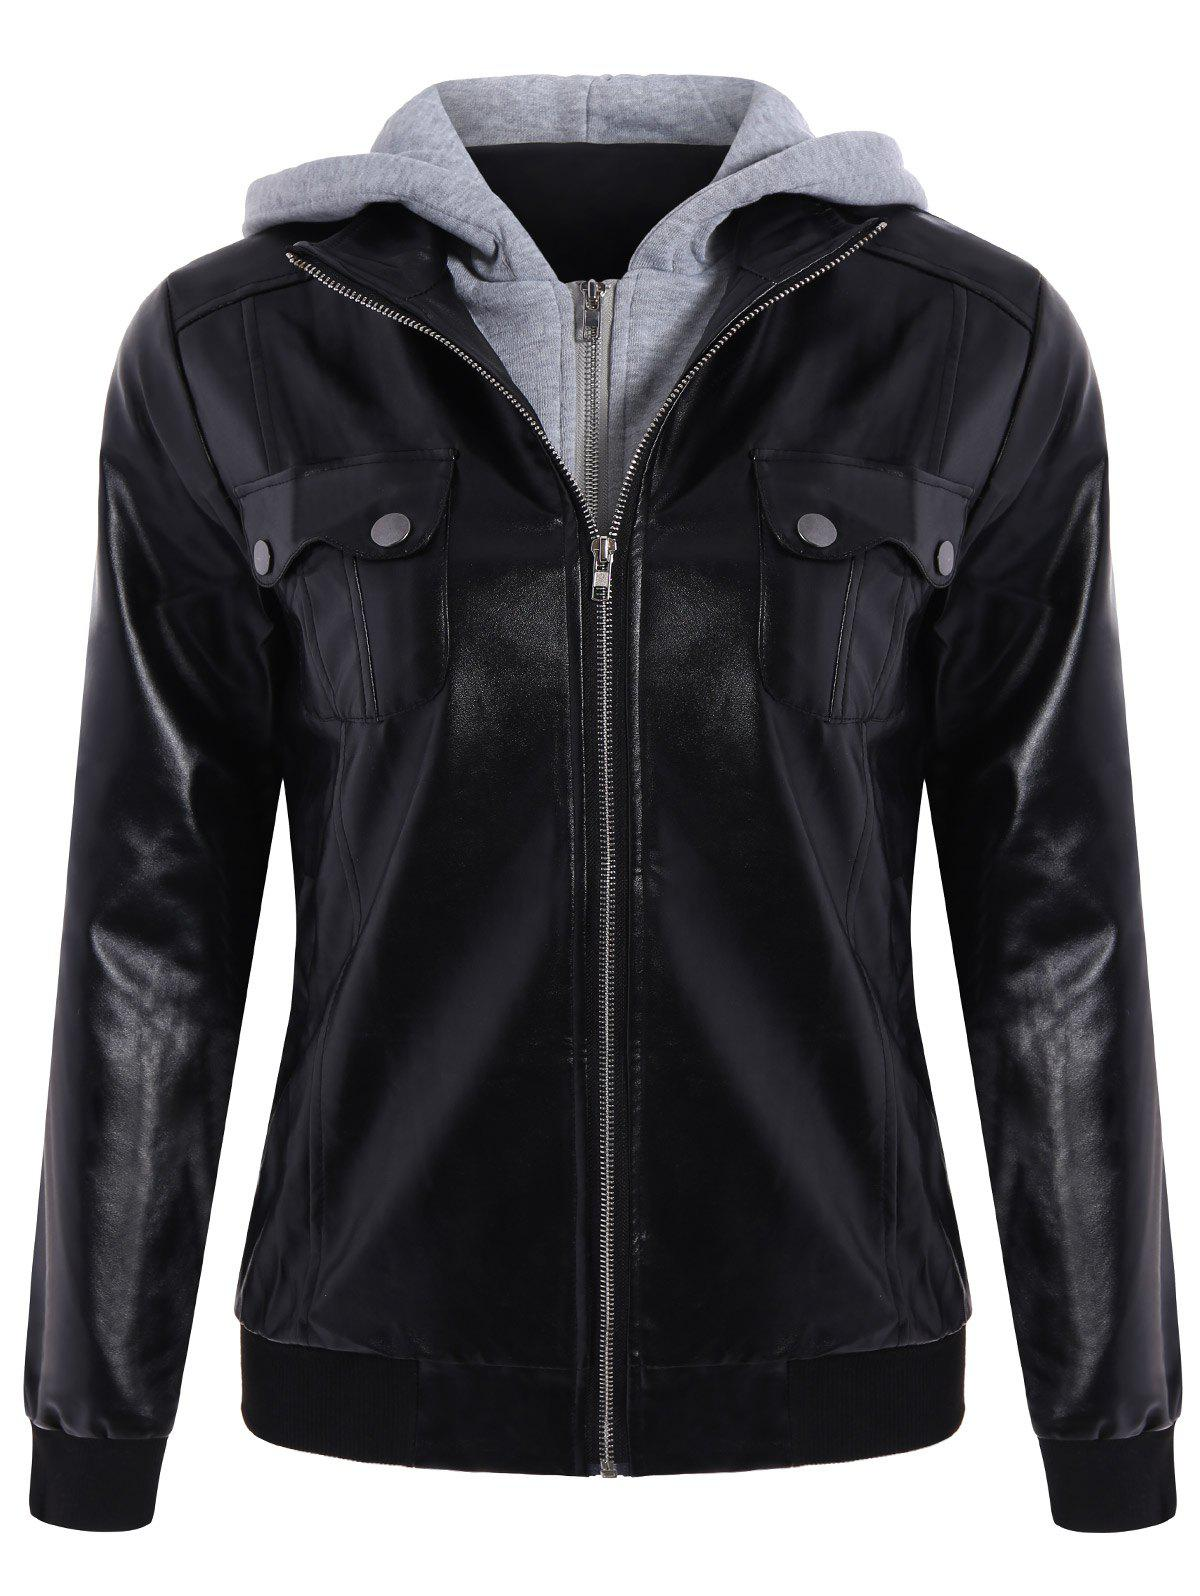 Attractive Hooded Pocket Design Black Faux Leather Jacket For Women - BLACK XL